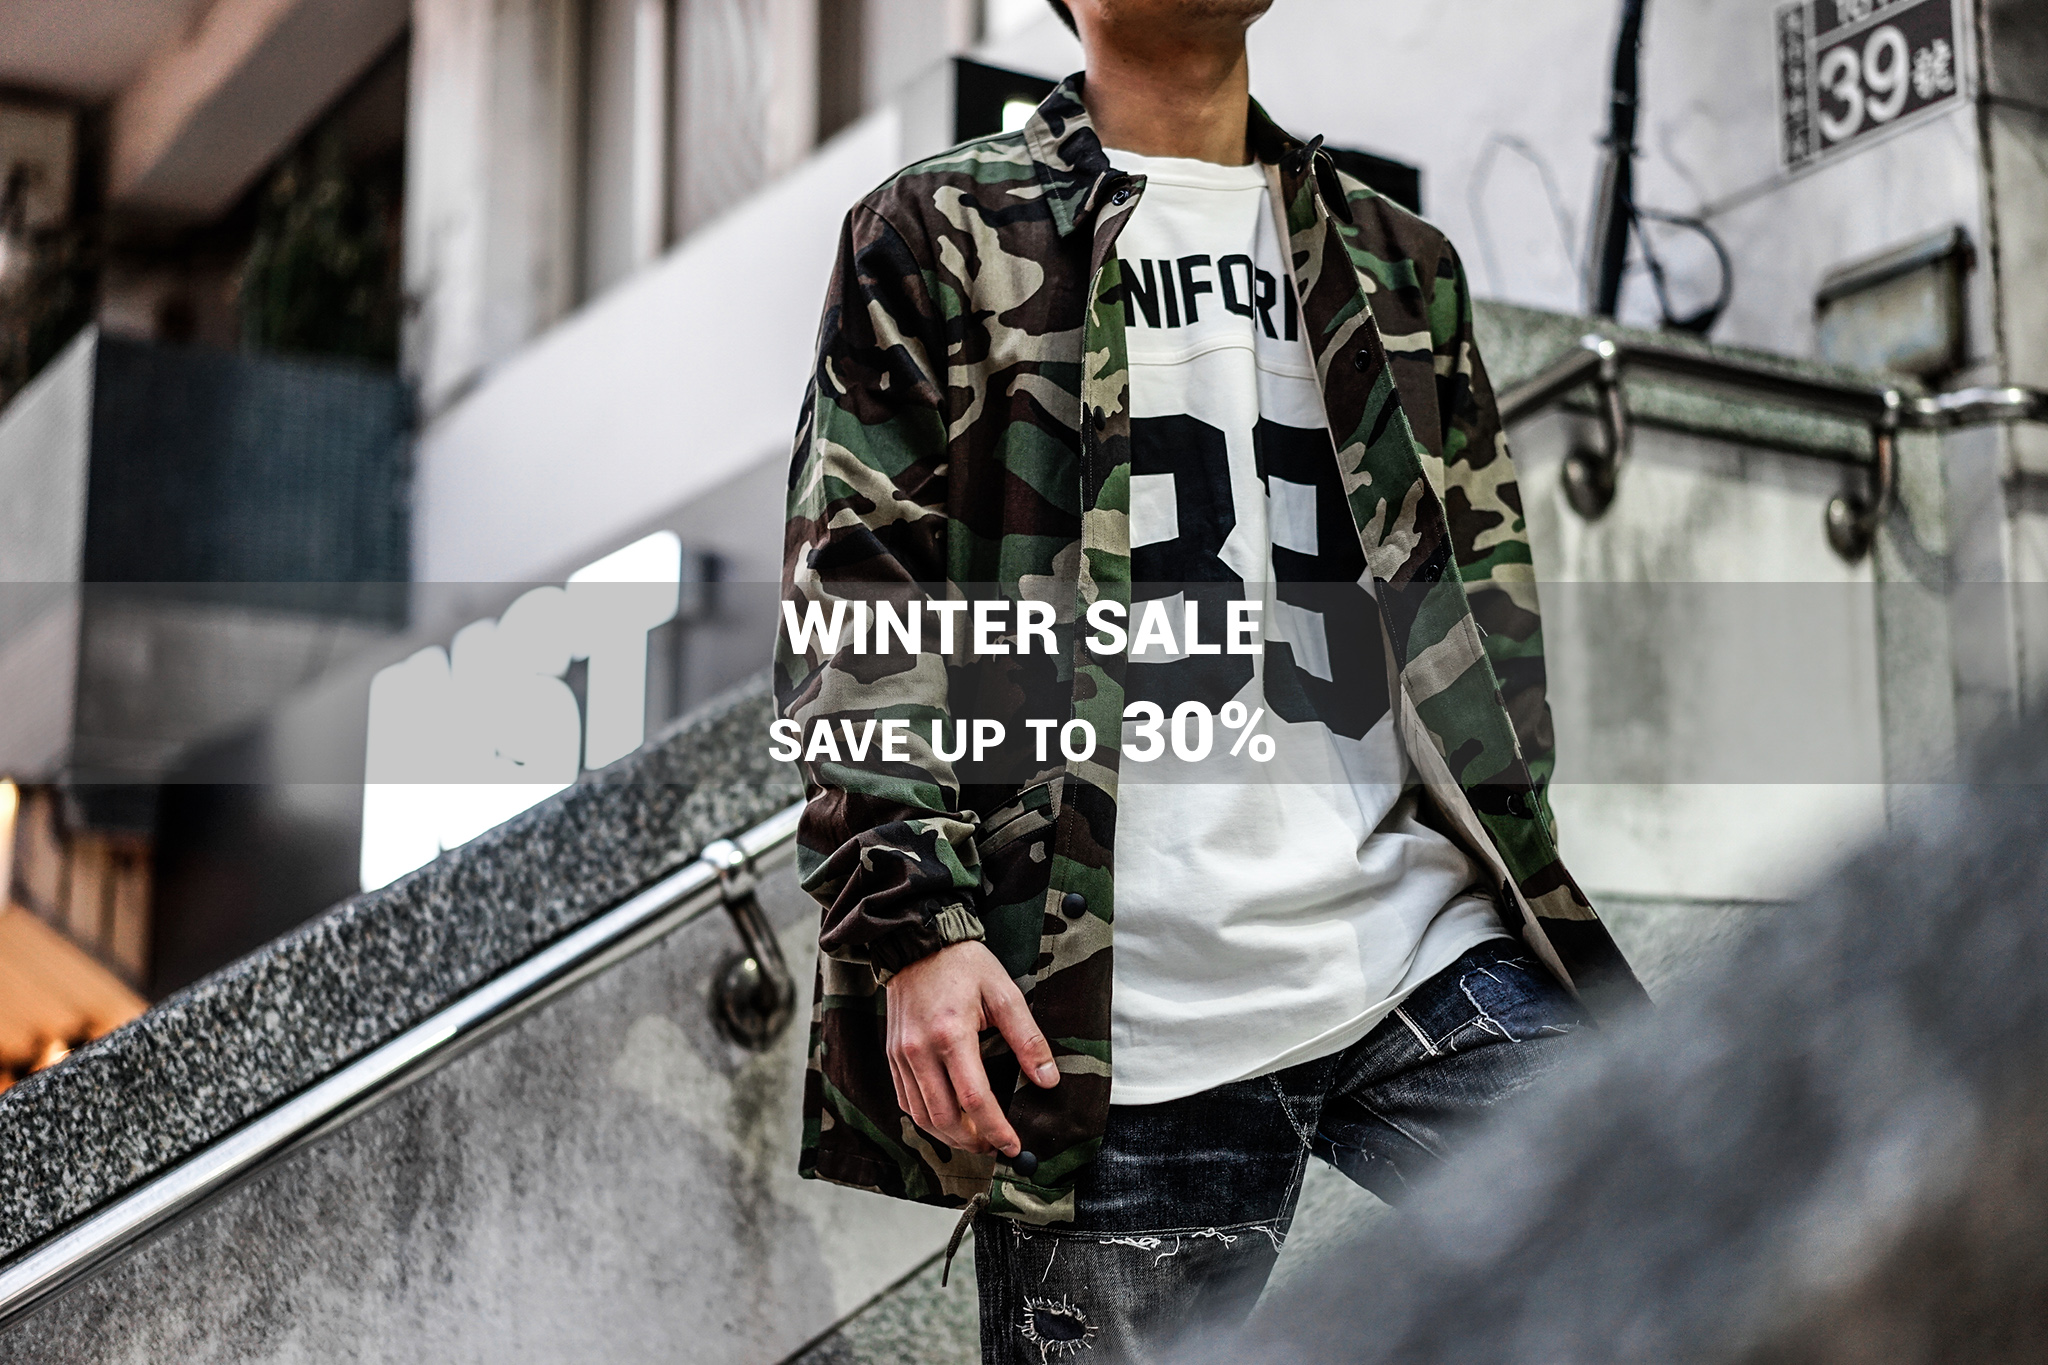 INVINCIBLE WINTER SALE,現正進行中!